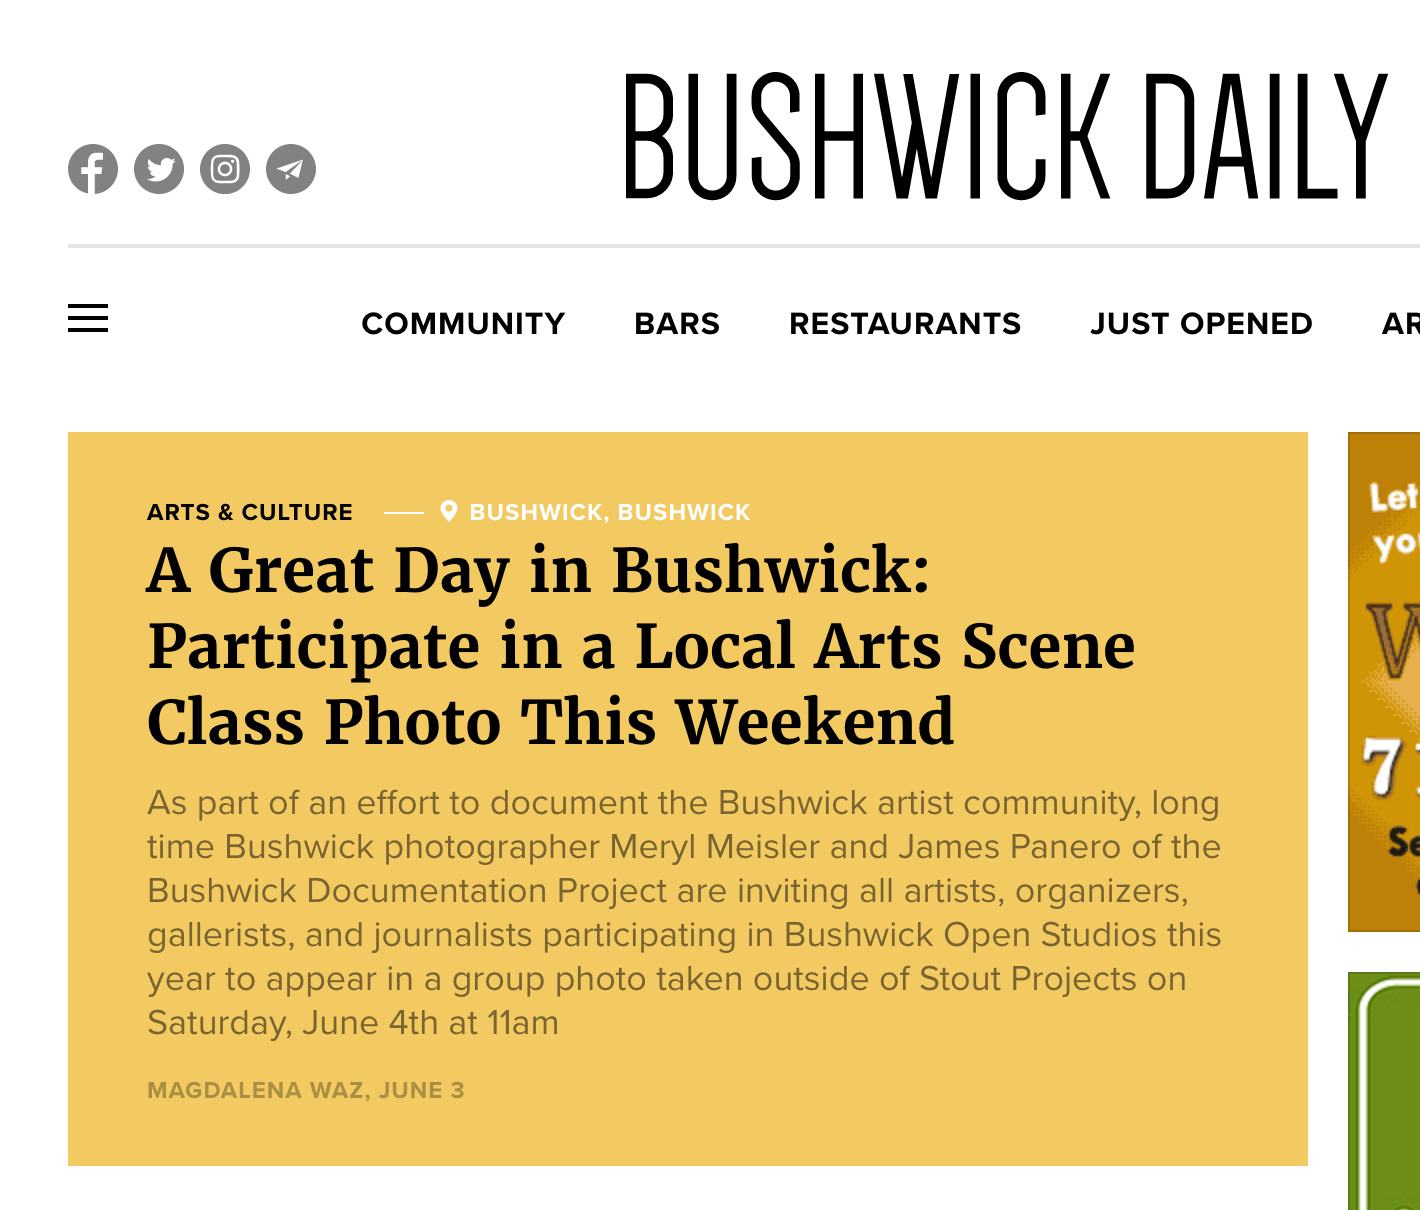 READ MORE FROM BUSHWICK DAILY...